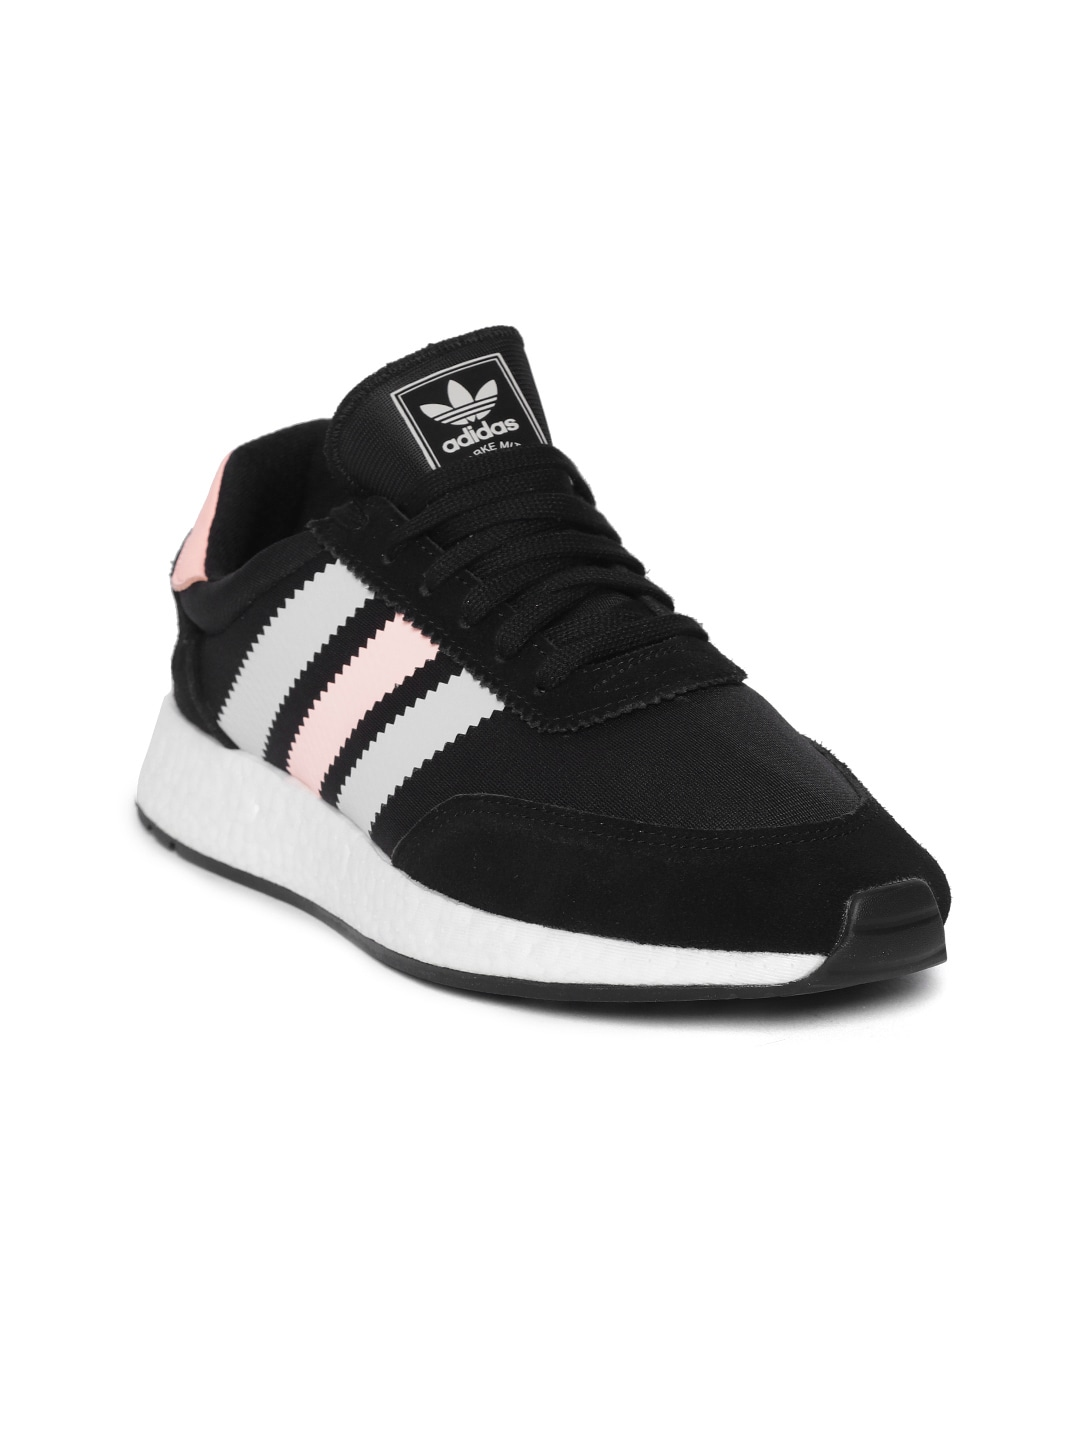 096d119e2eacf Adidas Originals - Buy Adidas Originals Products Online